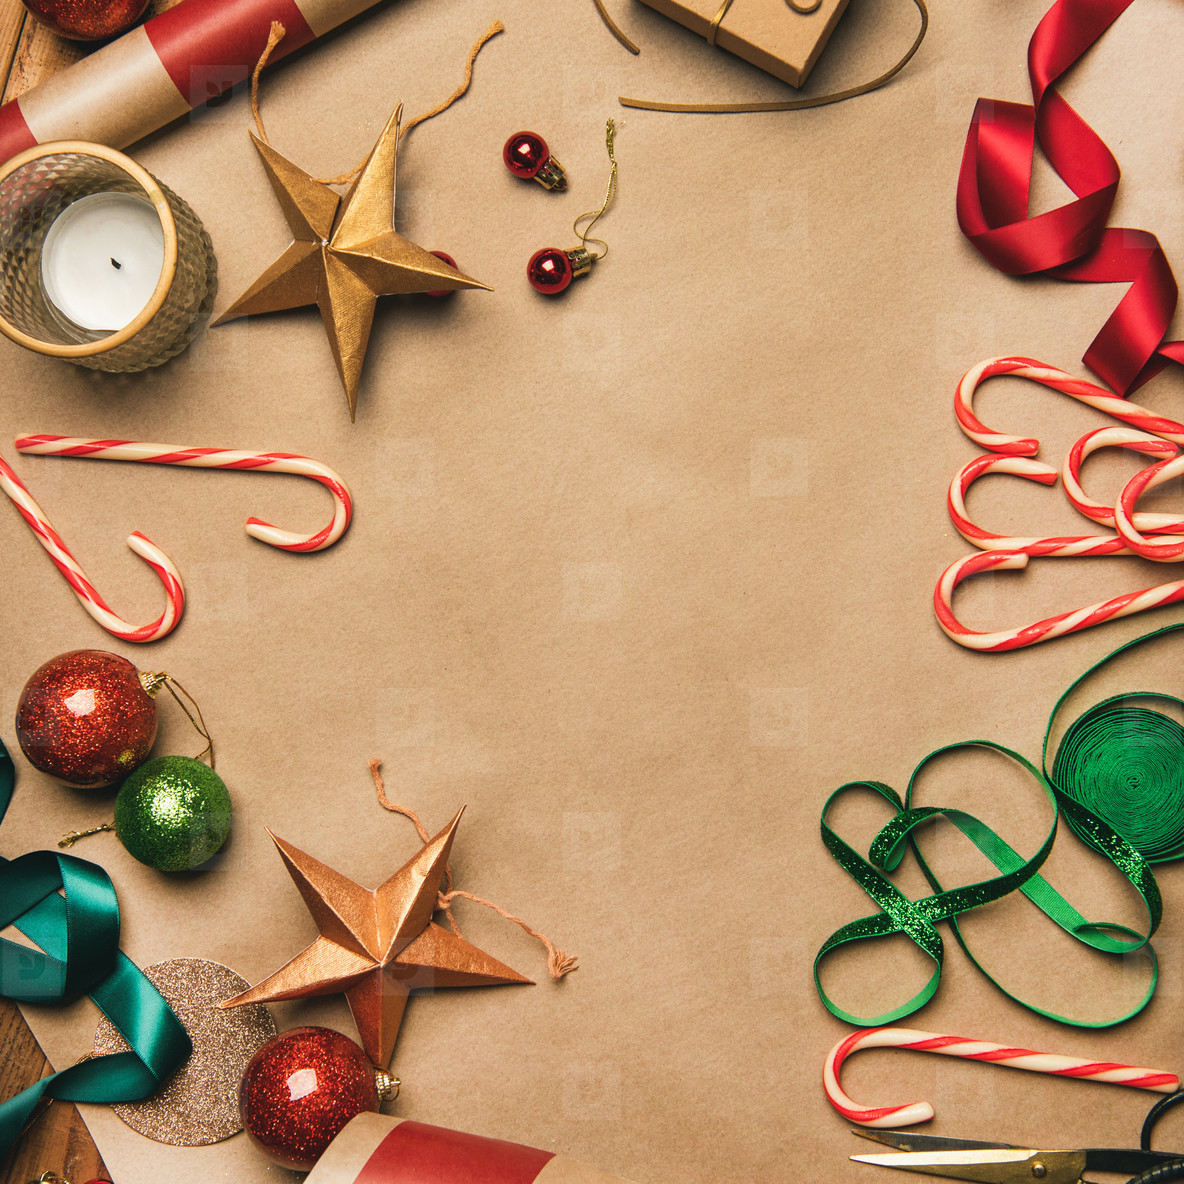 Paper Christmas Decorations.Photos Christmas Decorations And Balls Over Wrapping Paper Square Crop Youworkforthem